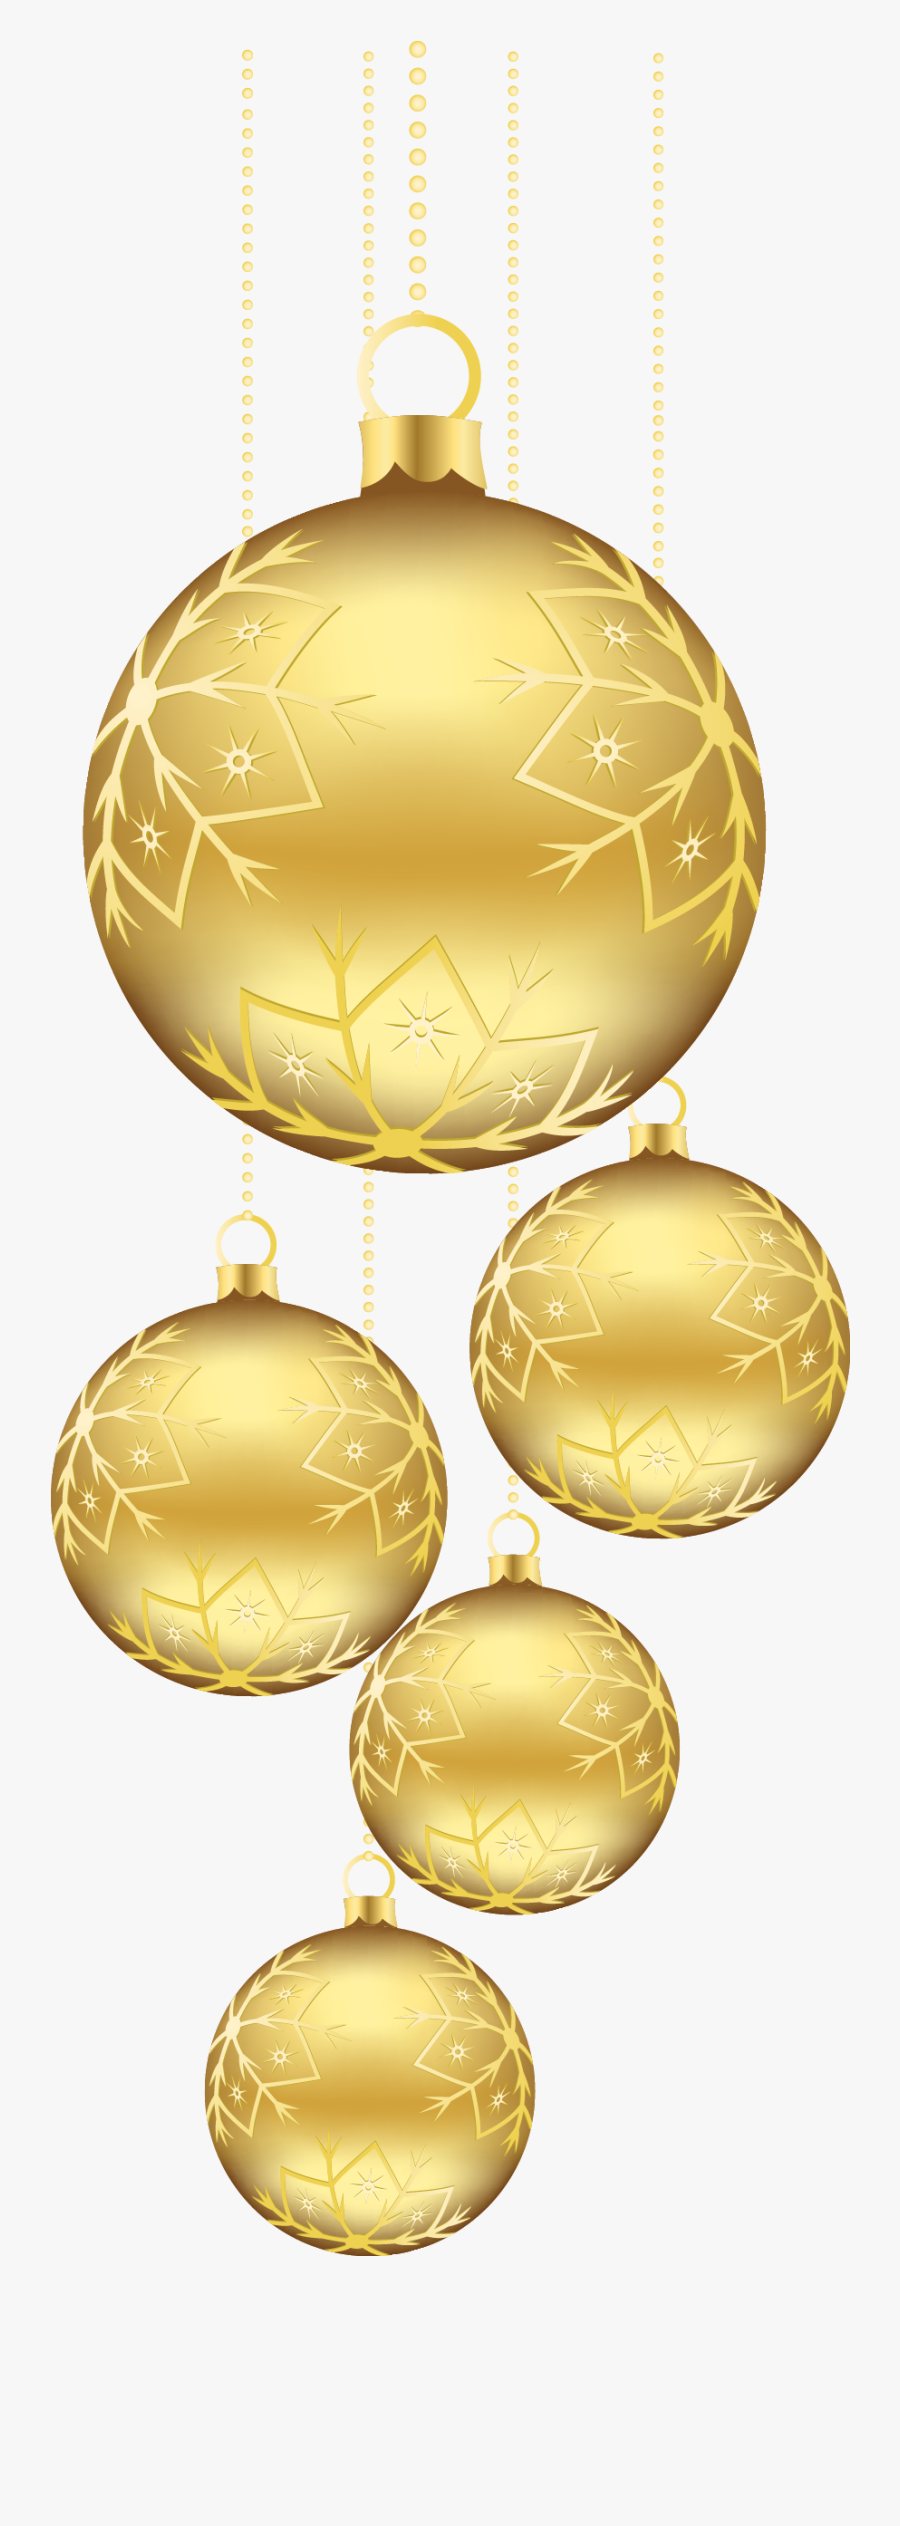 Pin By France Rivard On Image - Gold Christmas Decorations Png, Transparent Clipart